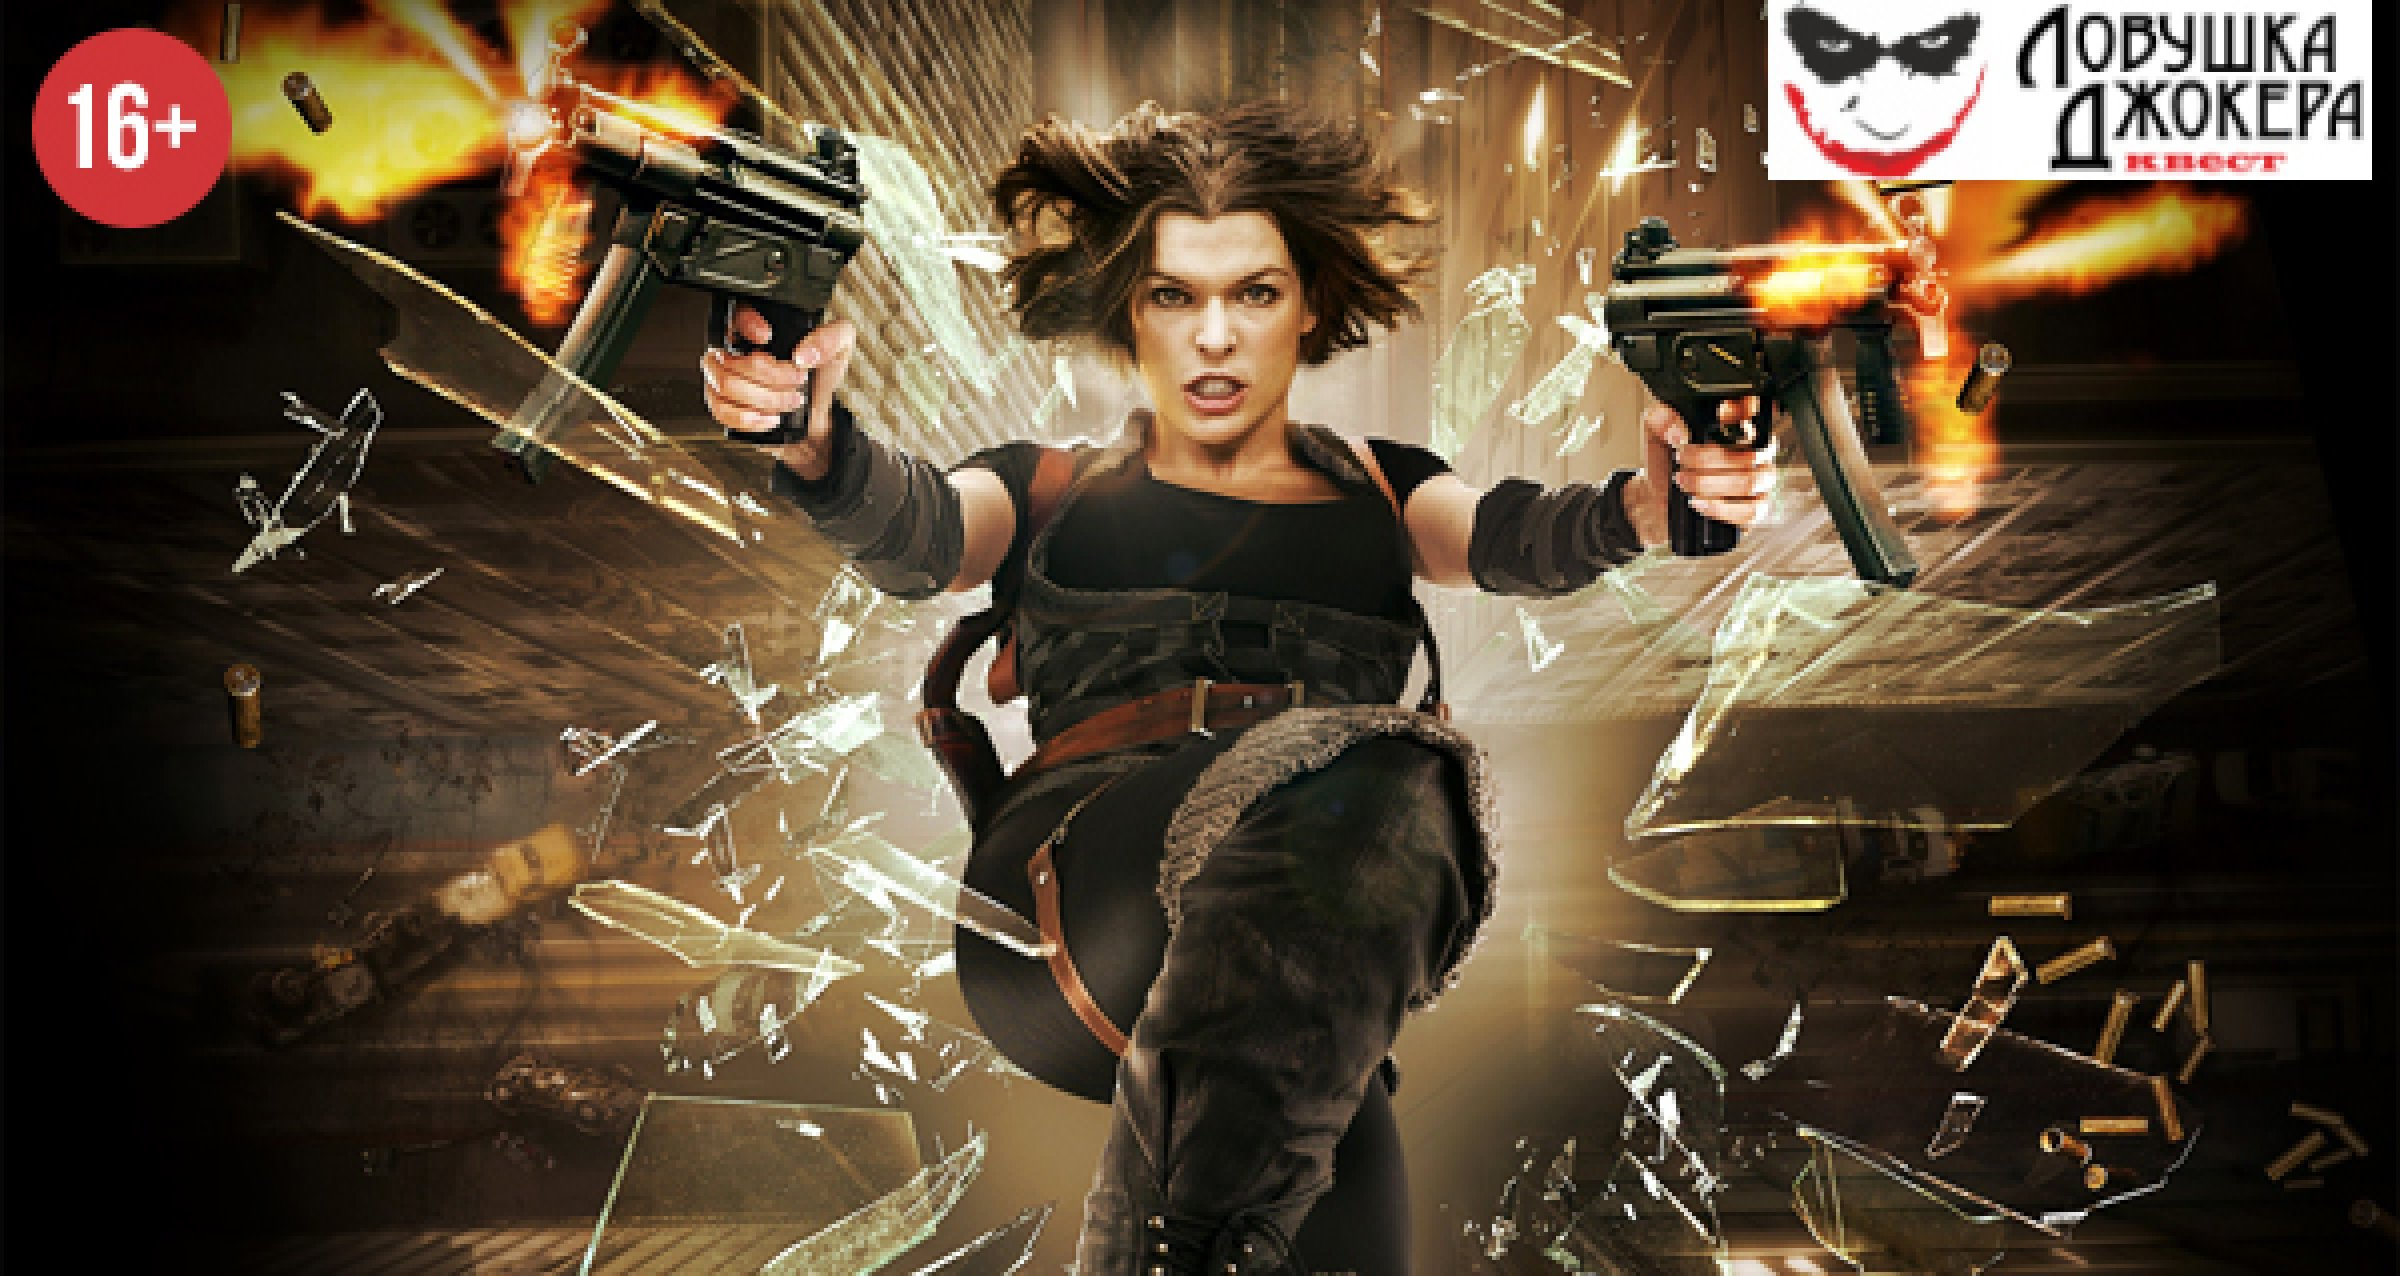 resident evil movies - HD1920×1080